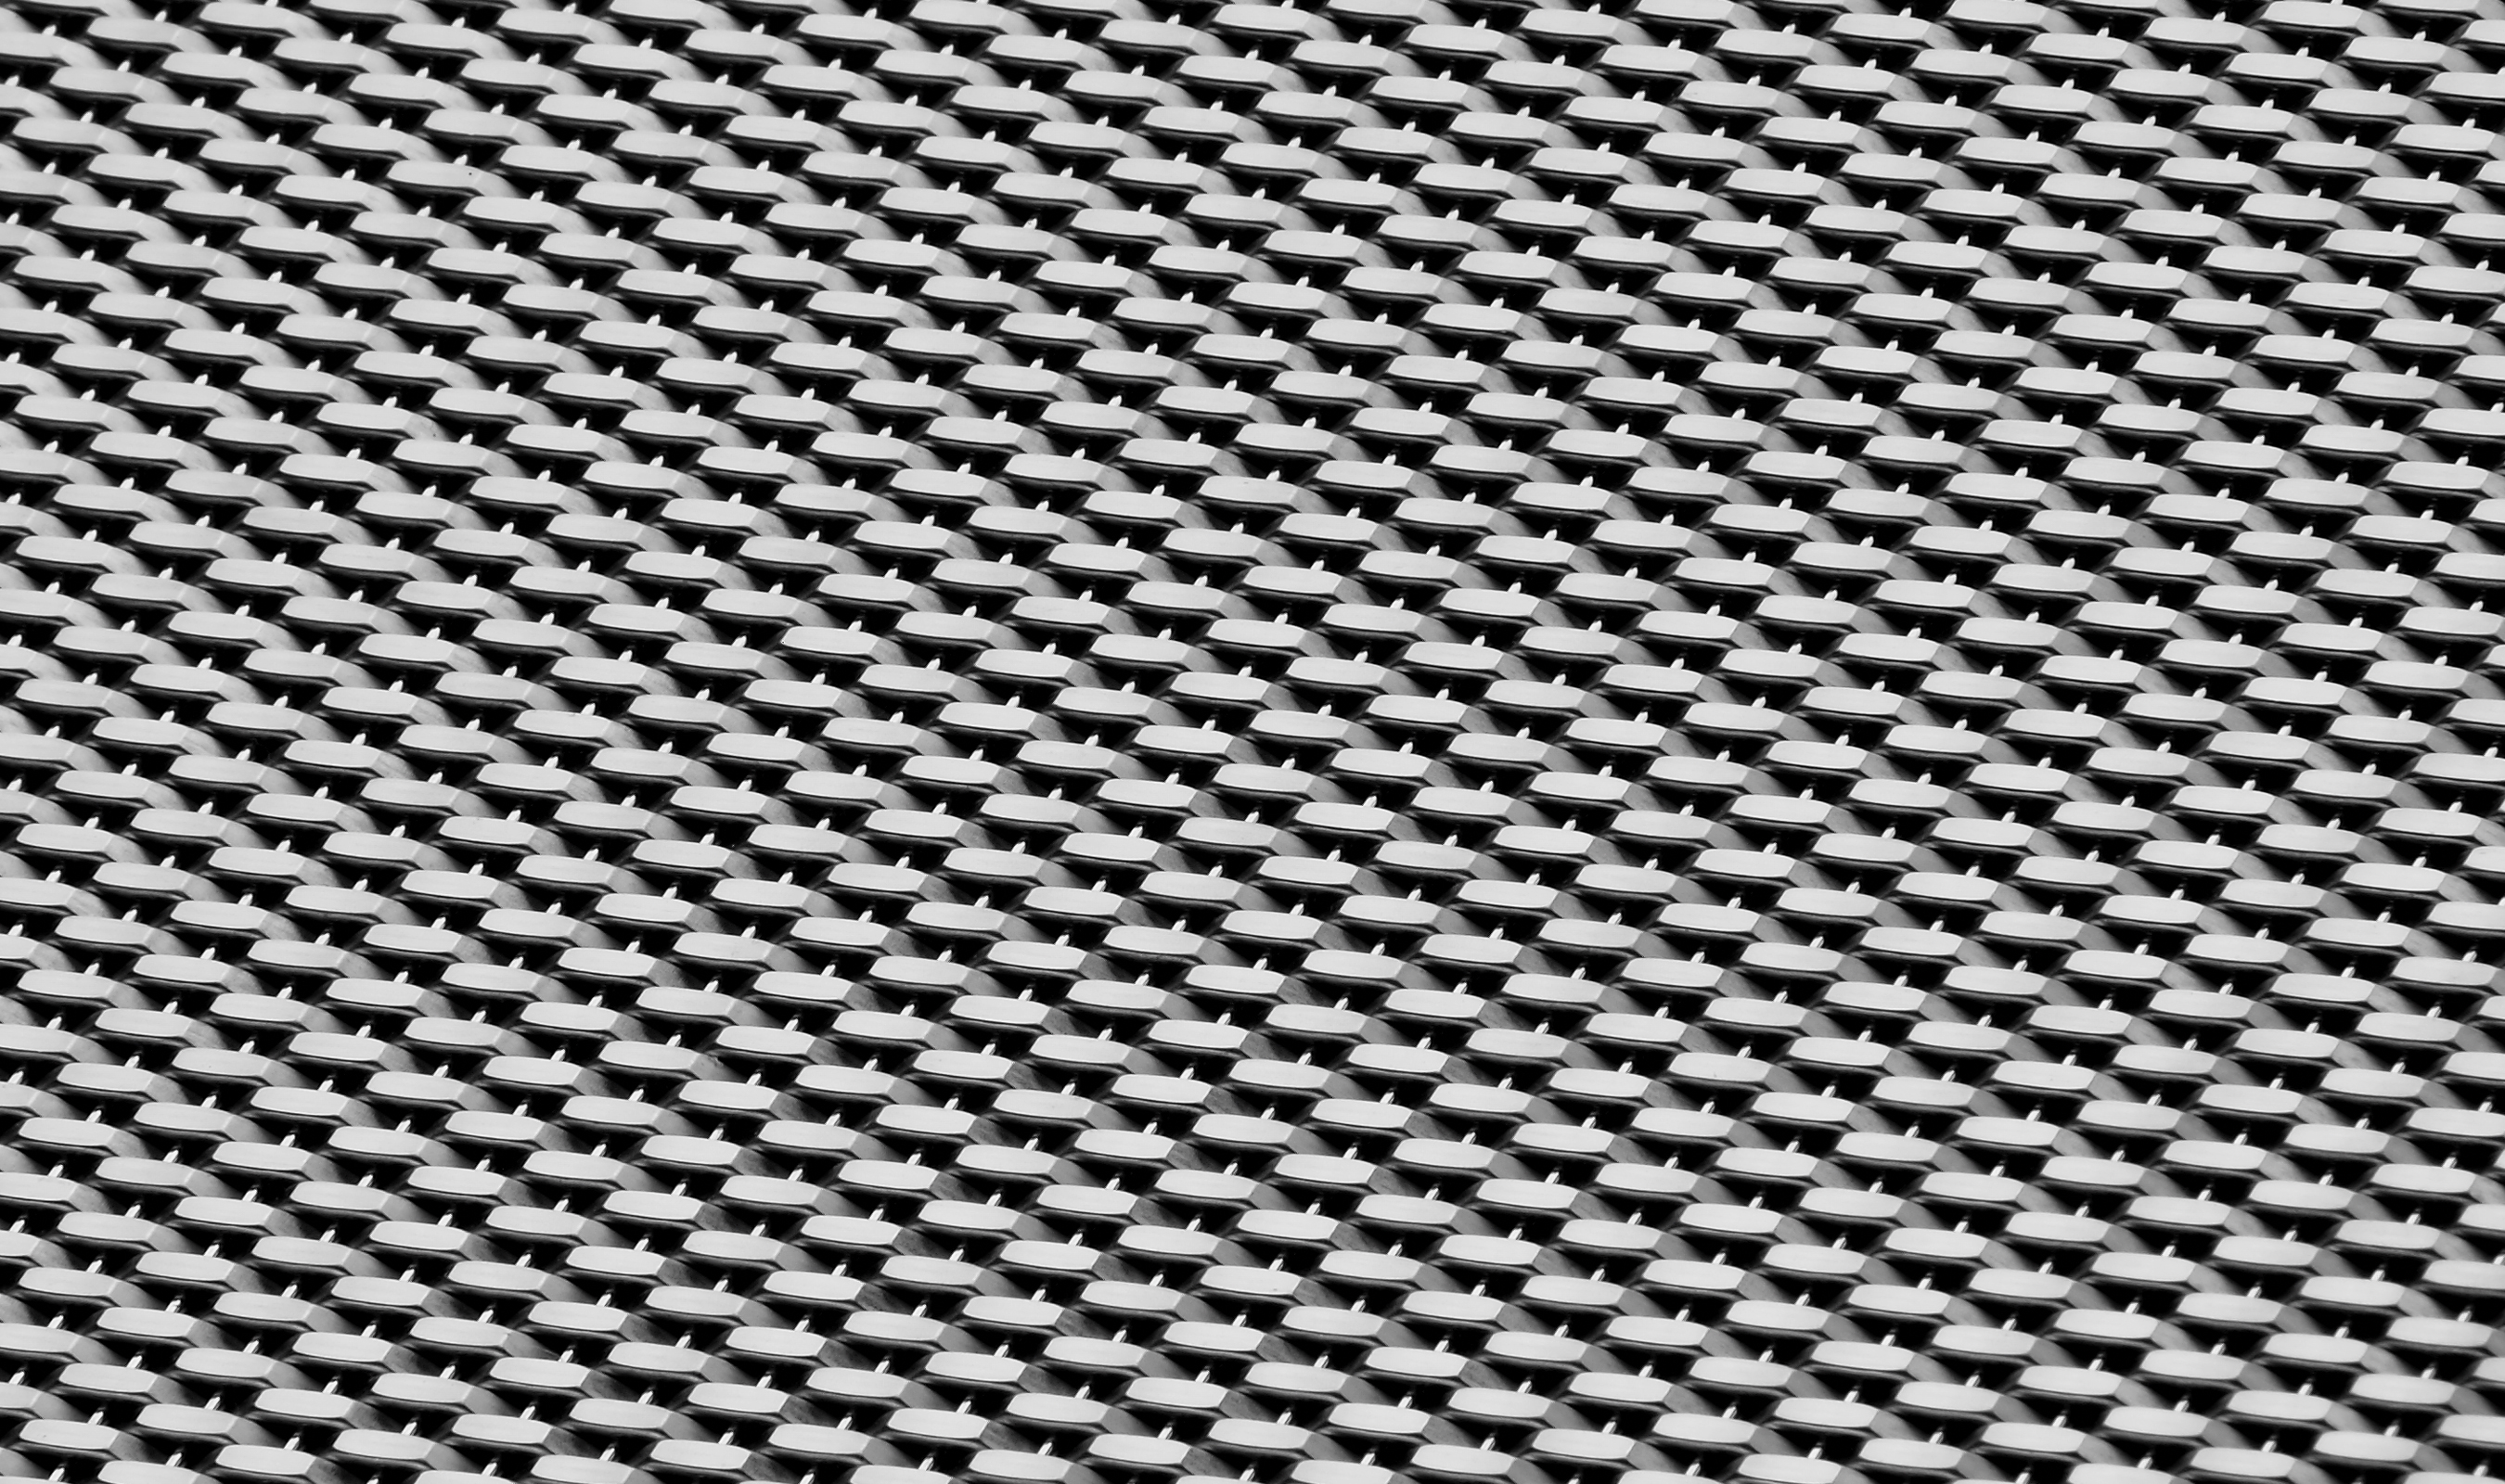 DS-62 architectural wire mesh